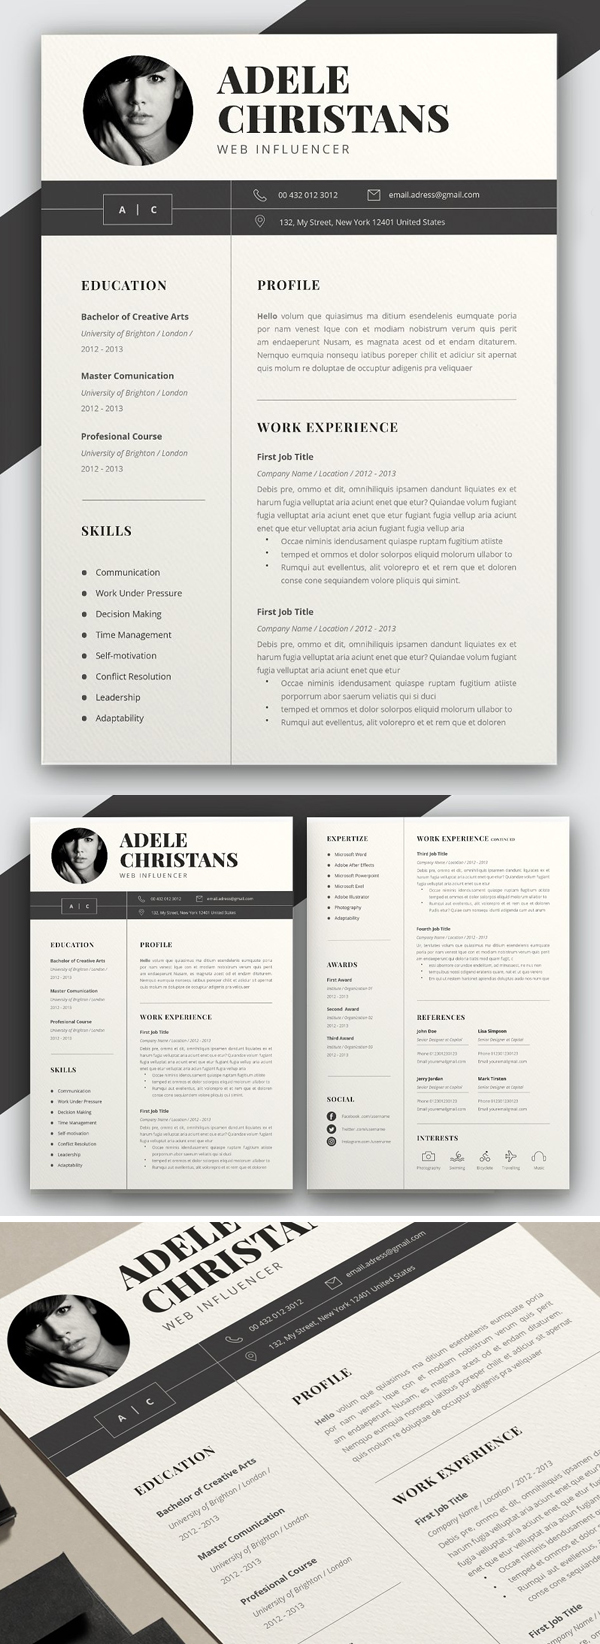 40+ Professional Word Resume Templates in 2020 Resume